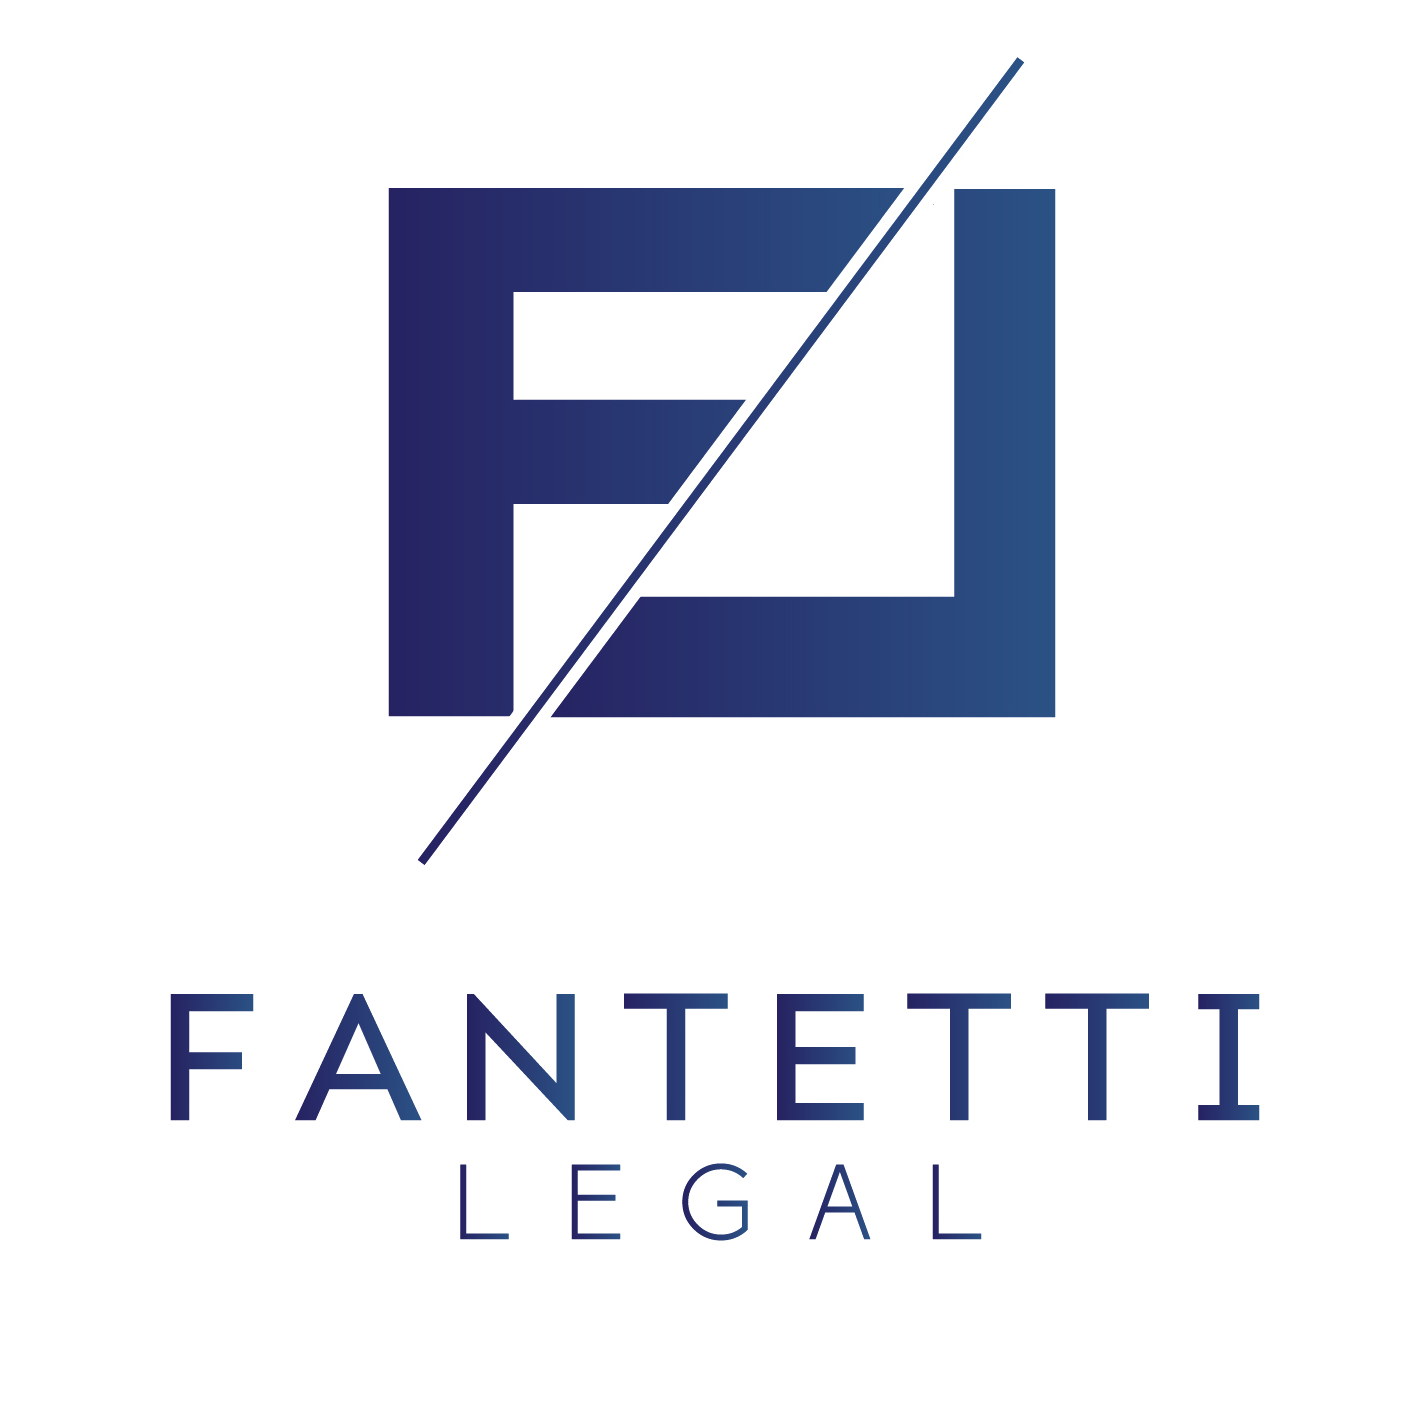 Fantetti Legal